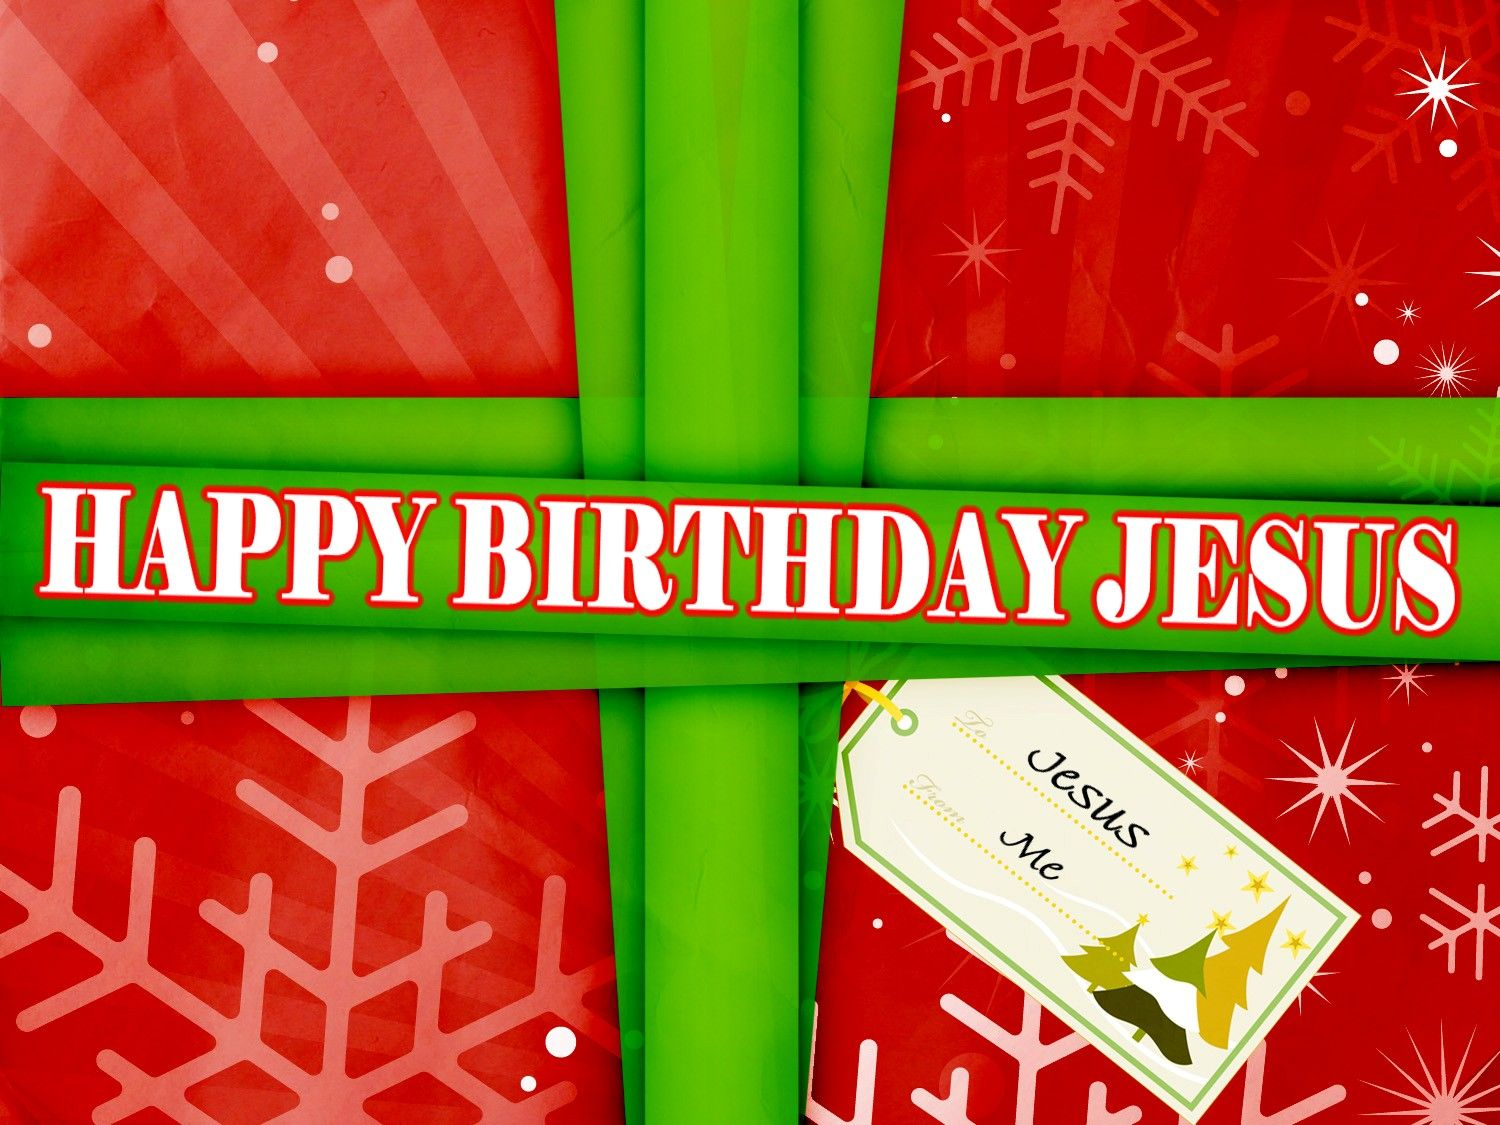 Pin by lindy felzien on christmas pinterest if christmas is to celebrate jesus birthday why is it we buy gifts for everyone but him kristyandbryce Choice Image